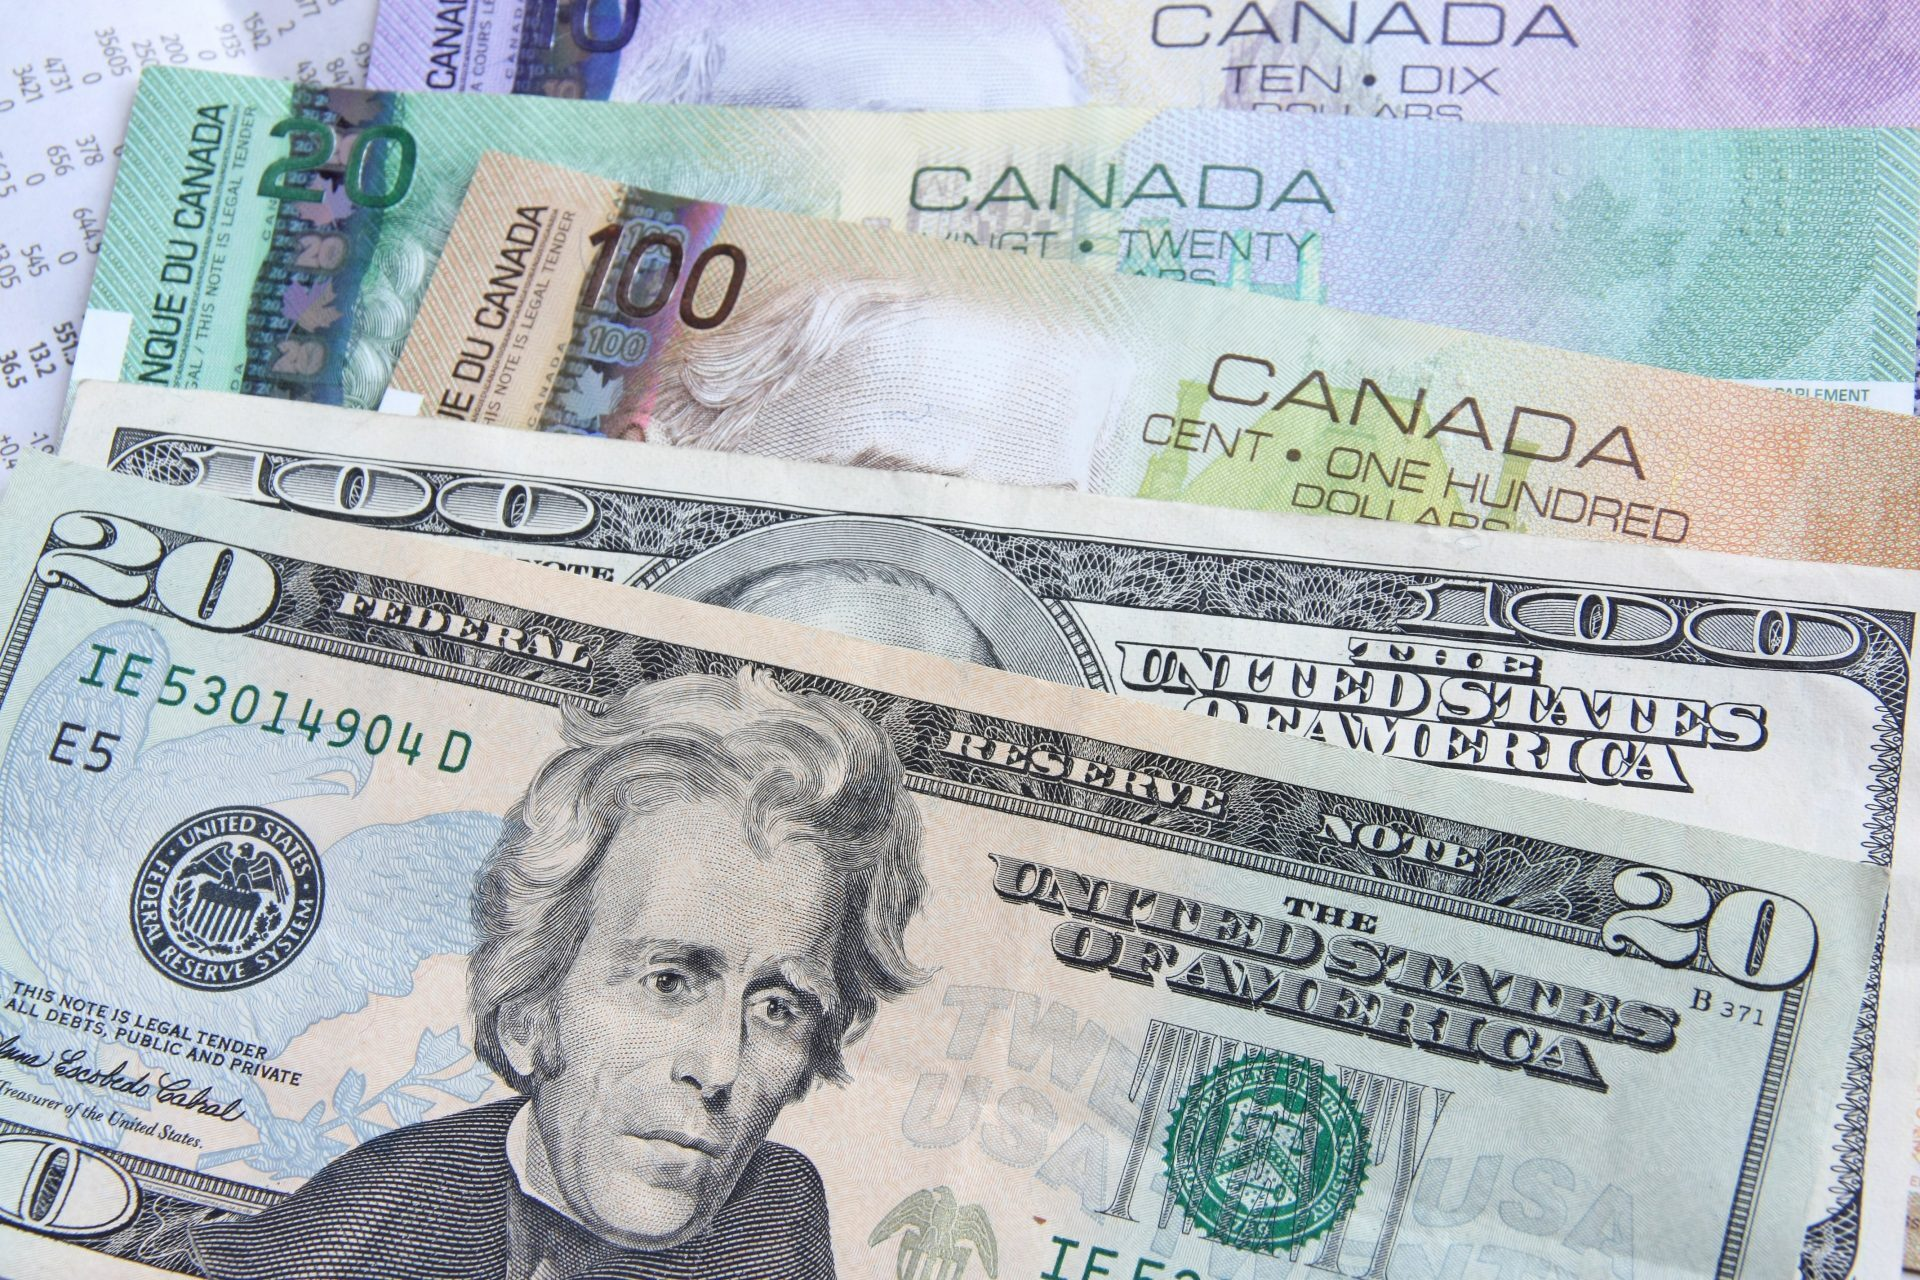 the depreciation of the canadian dollar The bank predicts that by the second quarter of 2017, the canadian dollar will strengthen to 7518 cents against the greenback, bringing it back to the level seen at the end of last year.